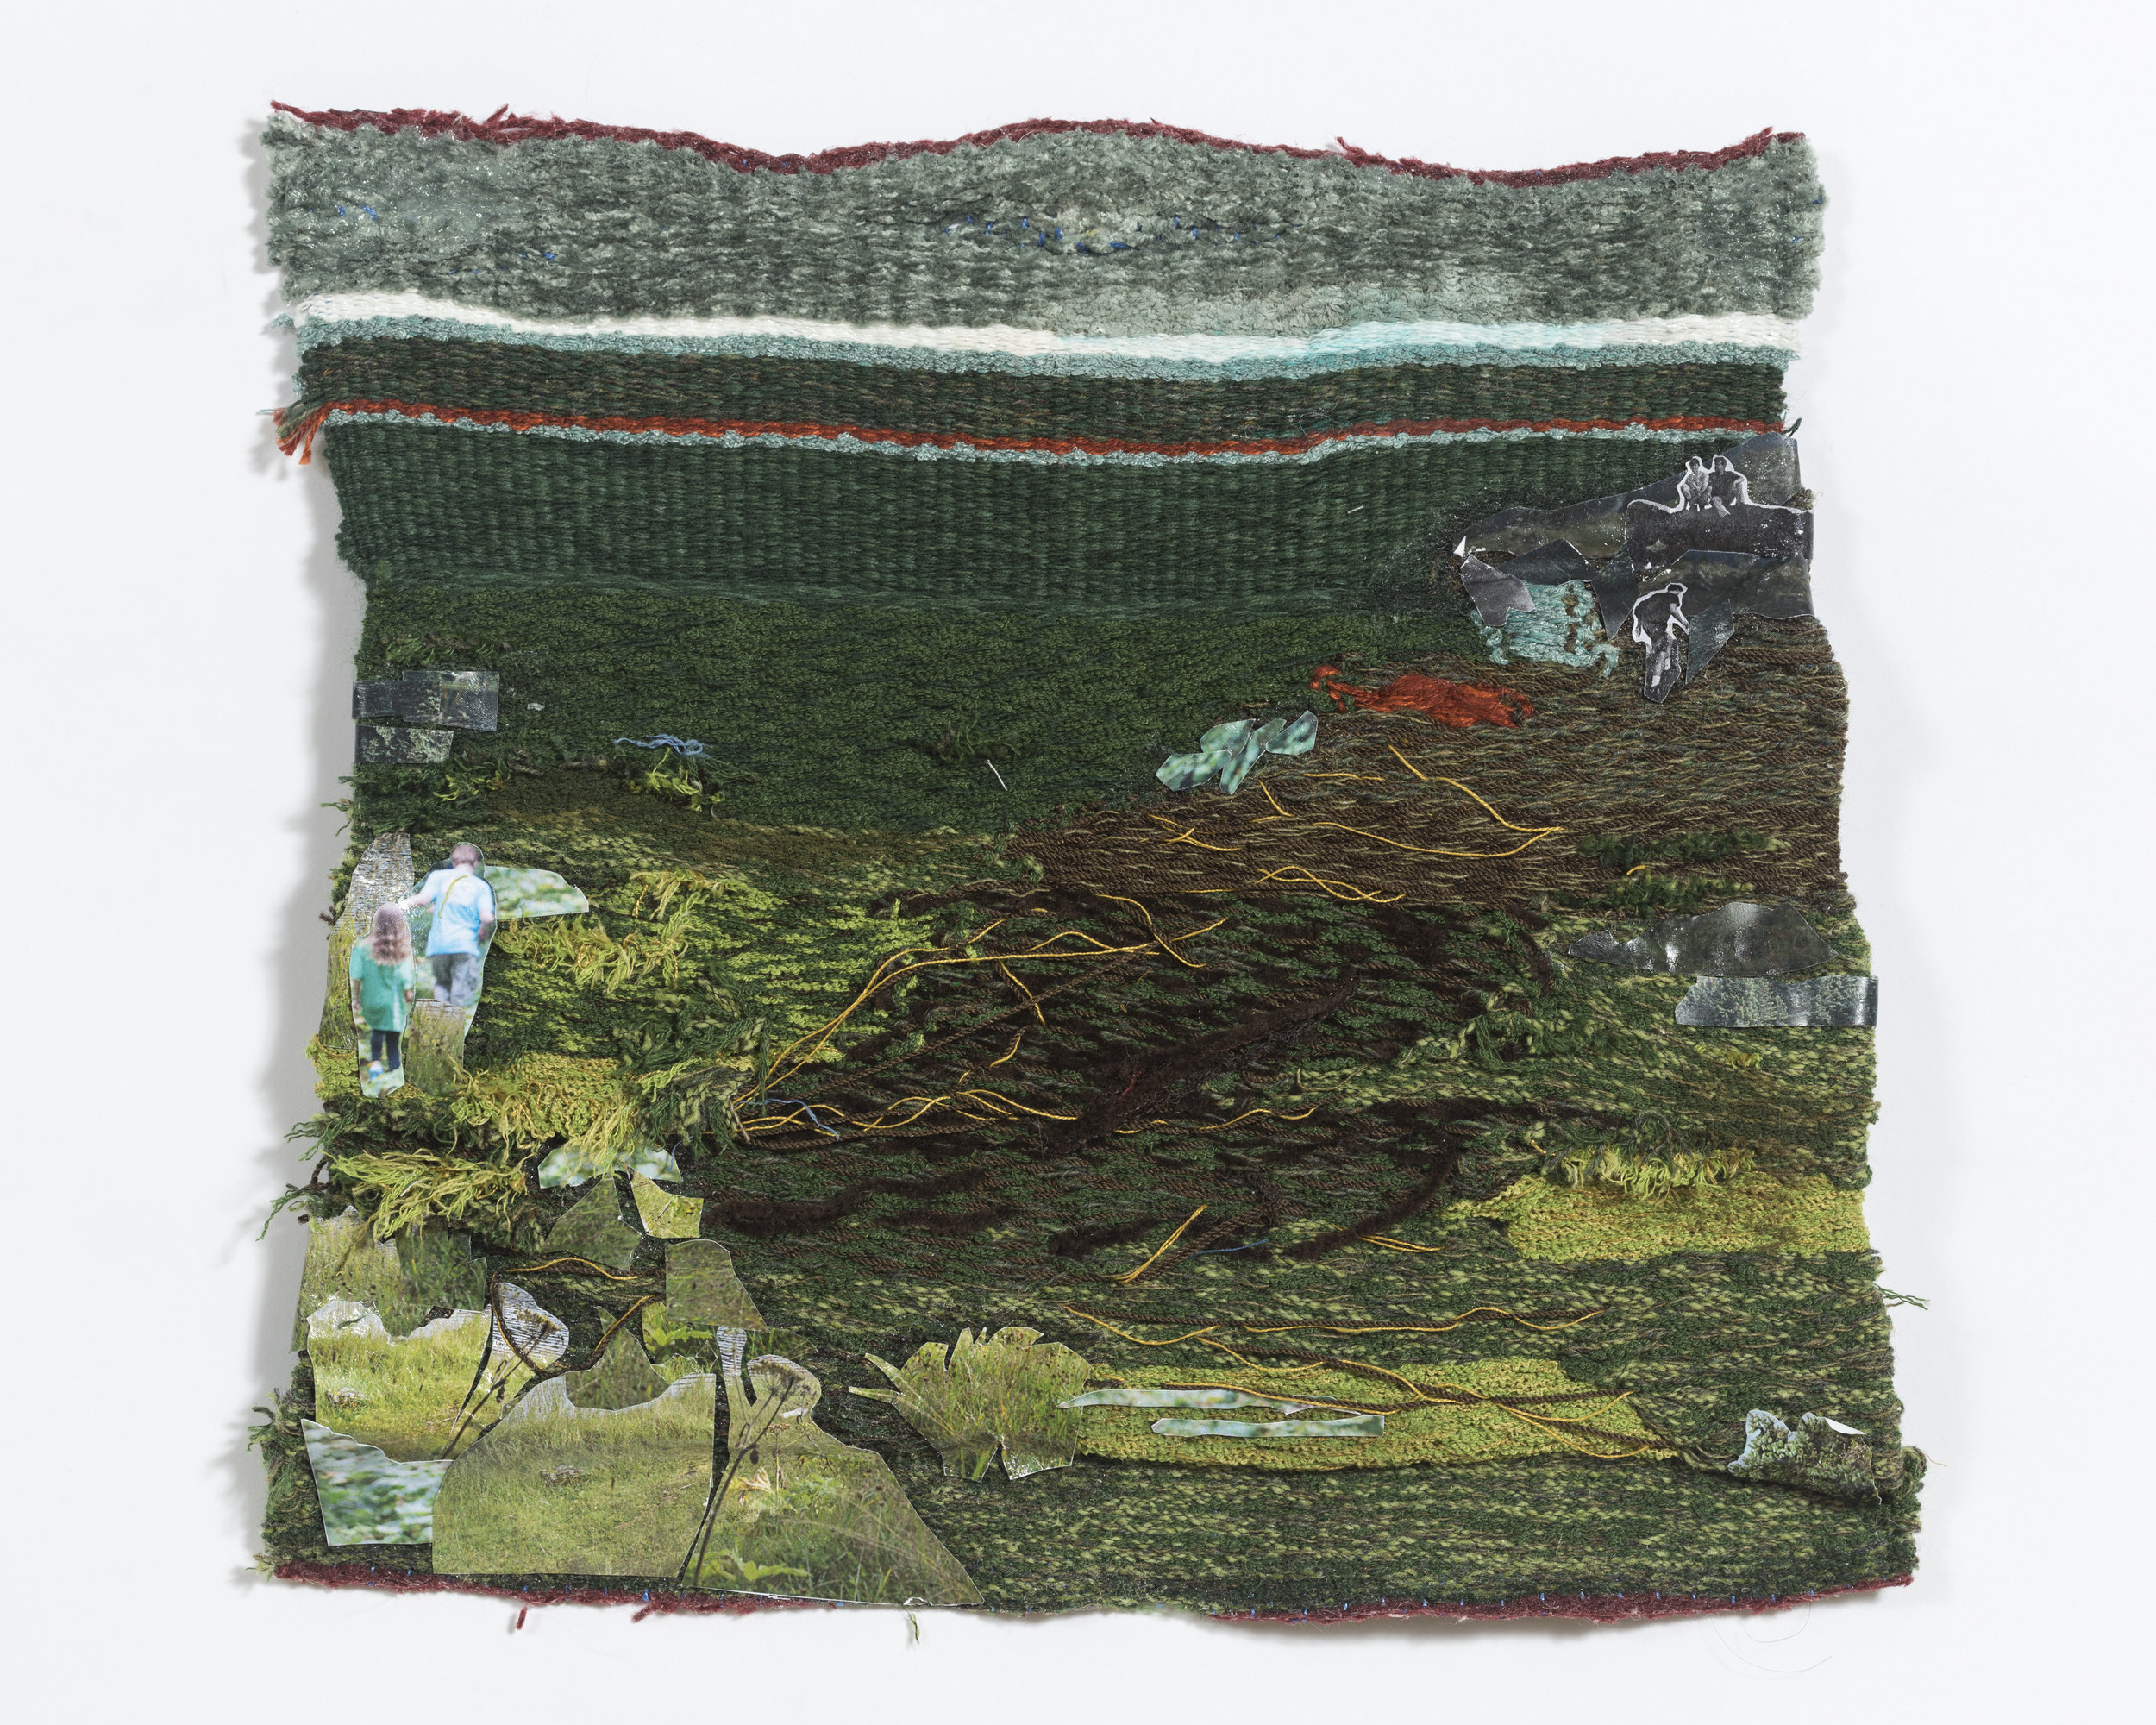 """woven on 8-harness floor loom, 10 x 12"""", found yarns and collaged inkjet printed photographs"""